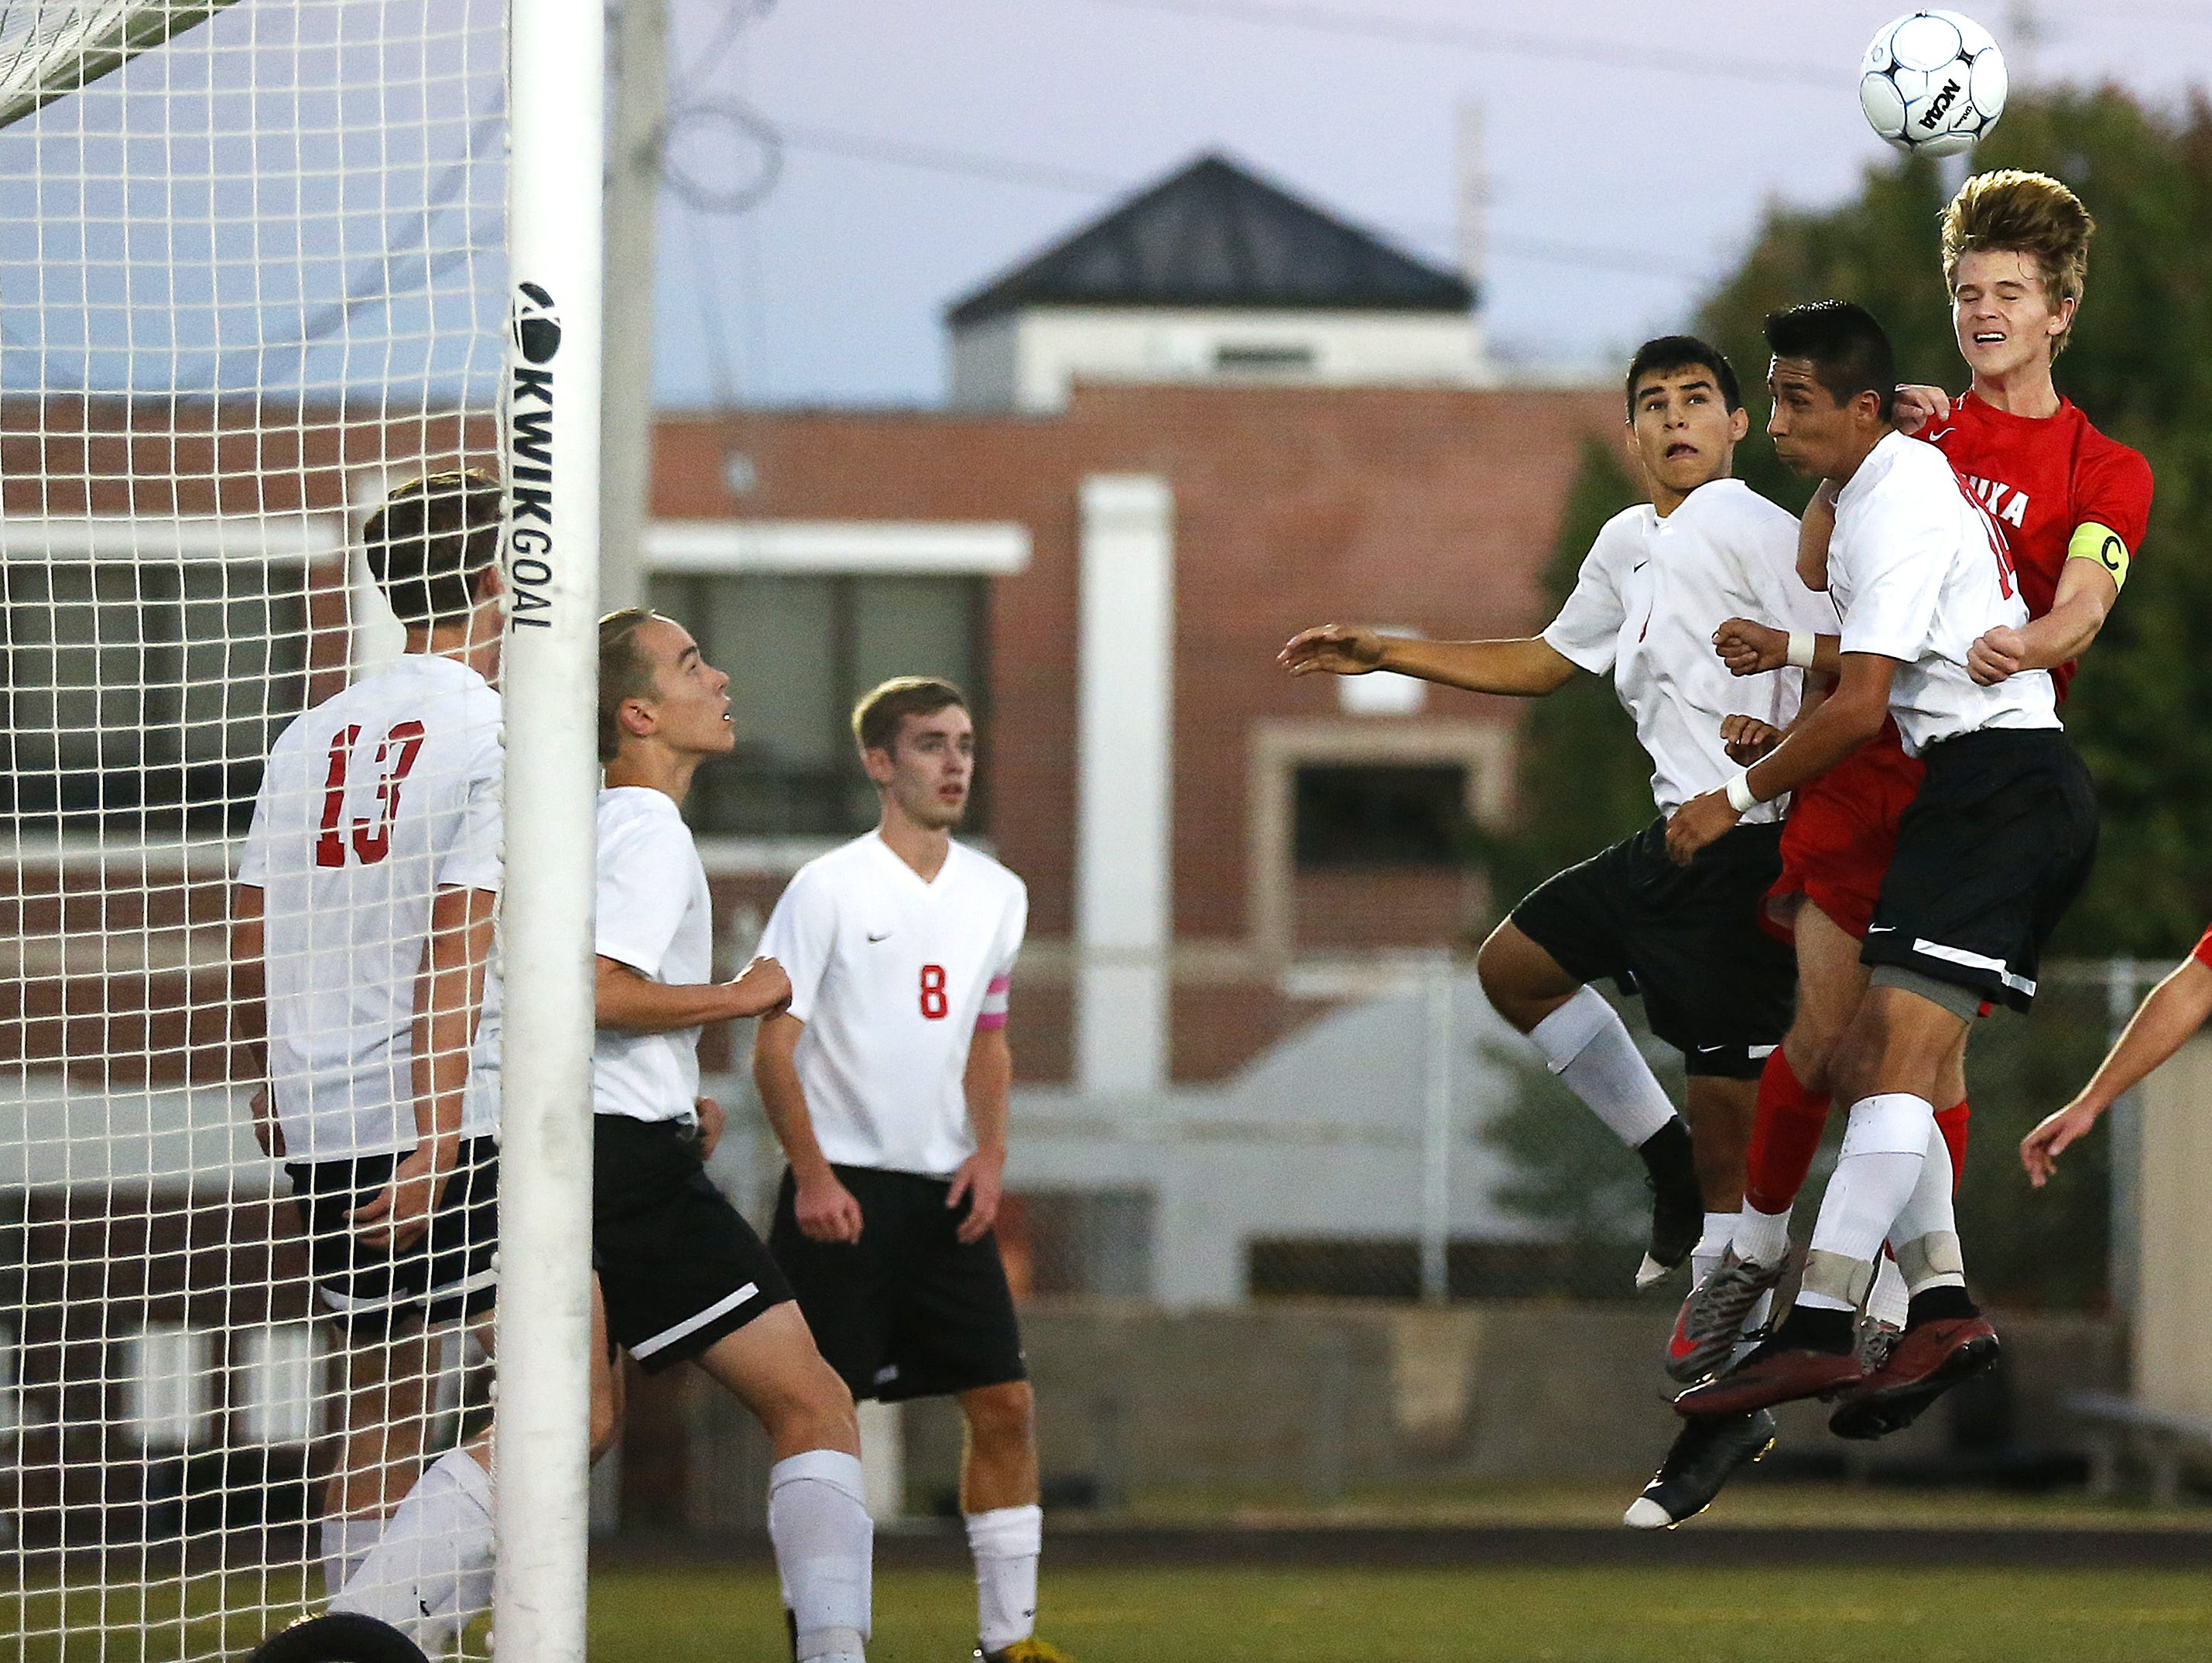 Central High School's 19 different sports teams will join the Ozark Conference at the start of the 2018-2019 school year.